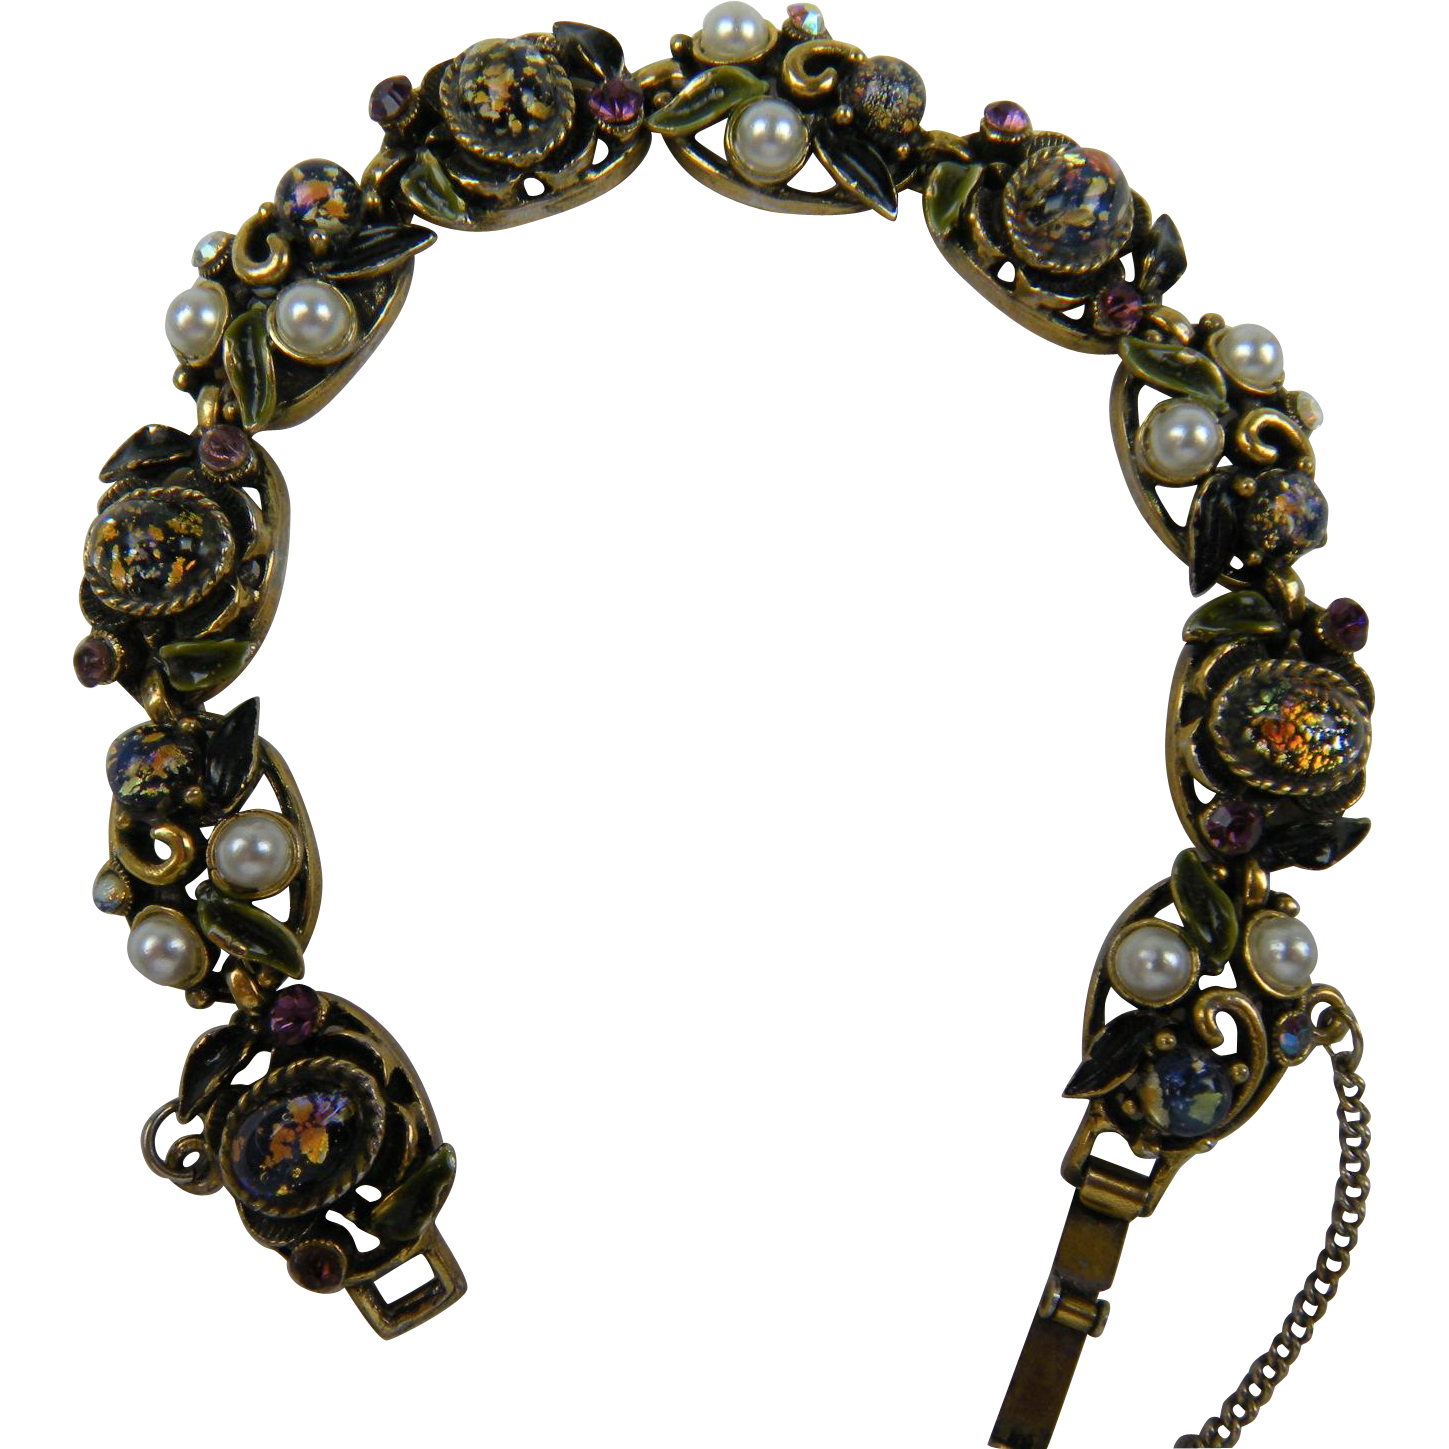 Gorgeous Bracelet with Dragon's Breath Cabochons, Enameling, and Imitation Pearls